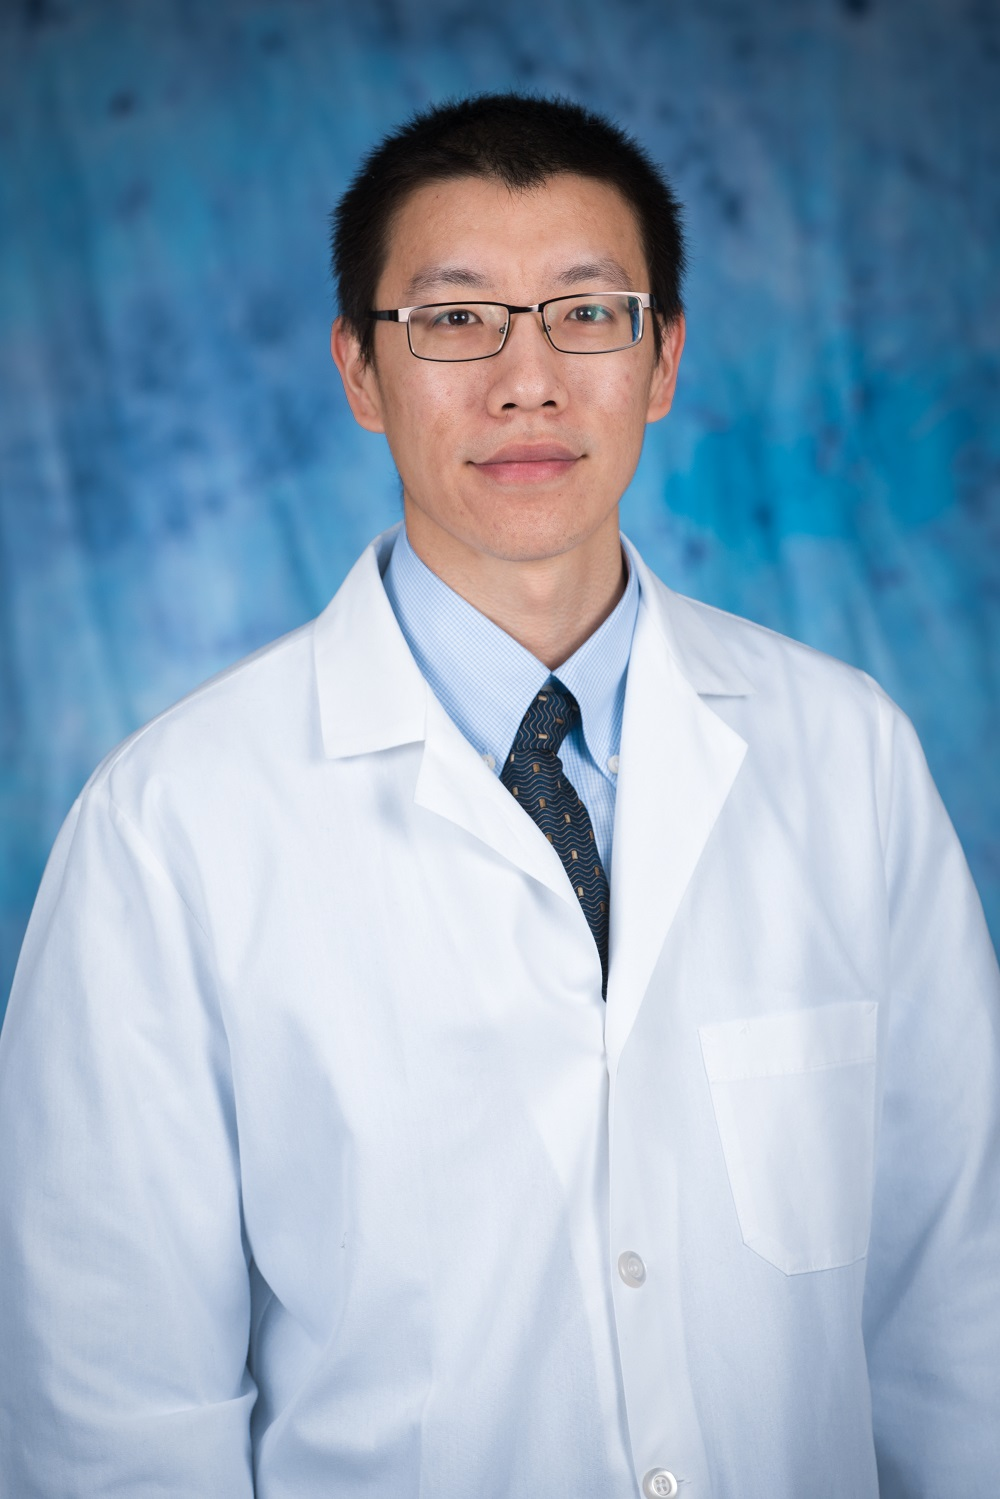 Joseph Wang, MD of Family Clinic of Oak Ridgw